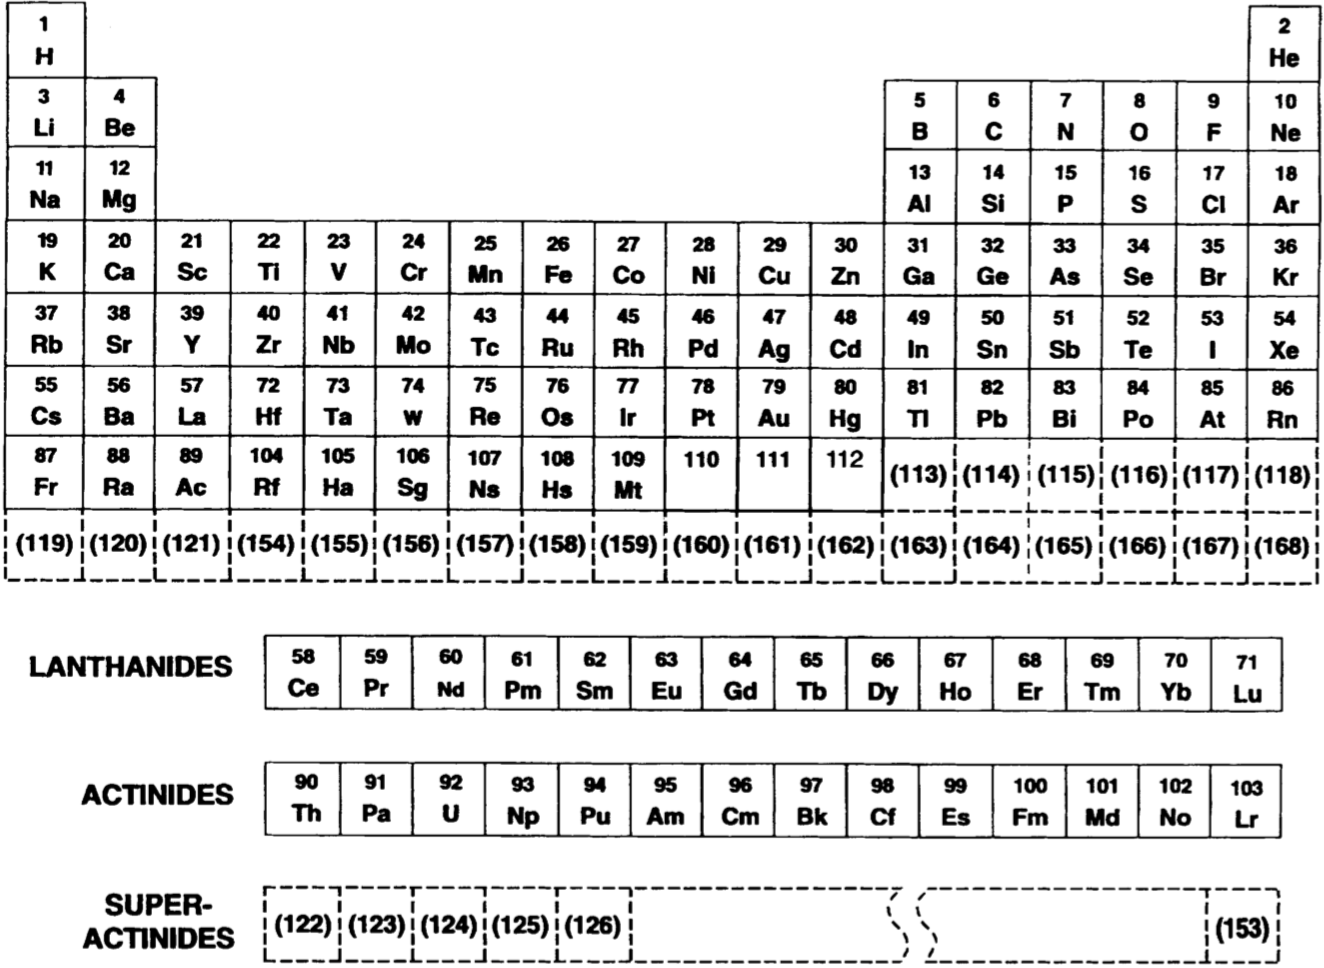 Periodic table database chemogenesis a futuristic periodic table showing predicted locations of a large number of transuranium elements atomic numbers in parentheses by glenn seaborg in 1976 urtaz Choice Image